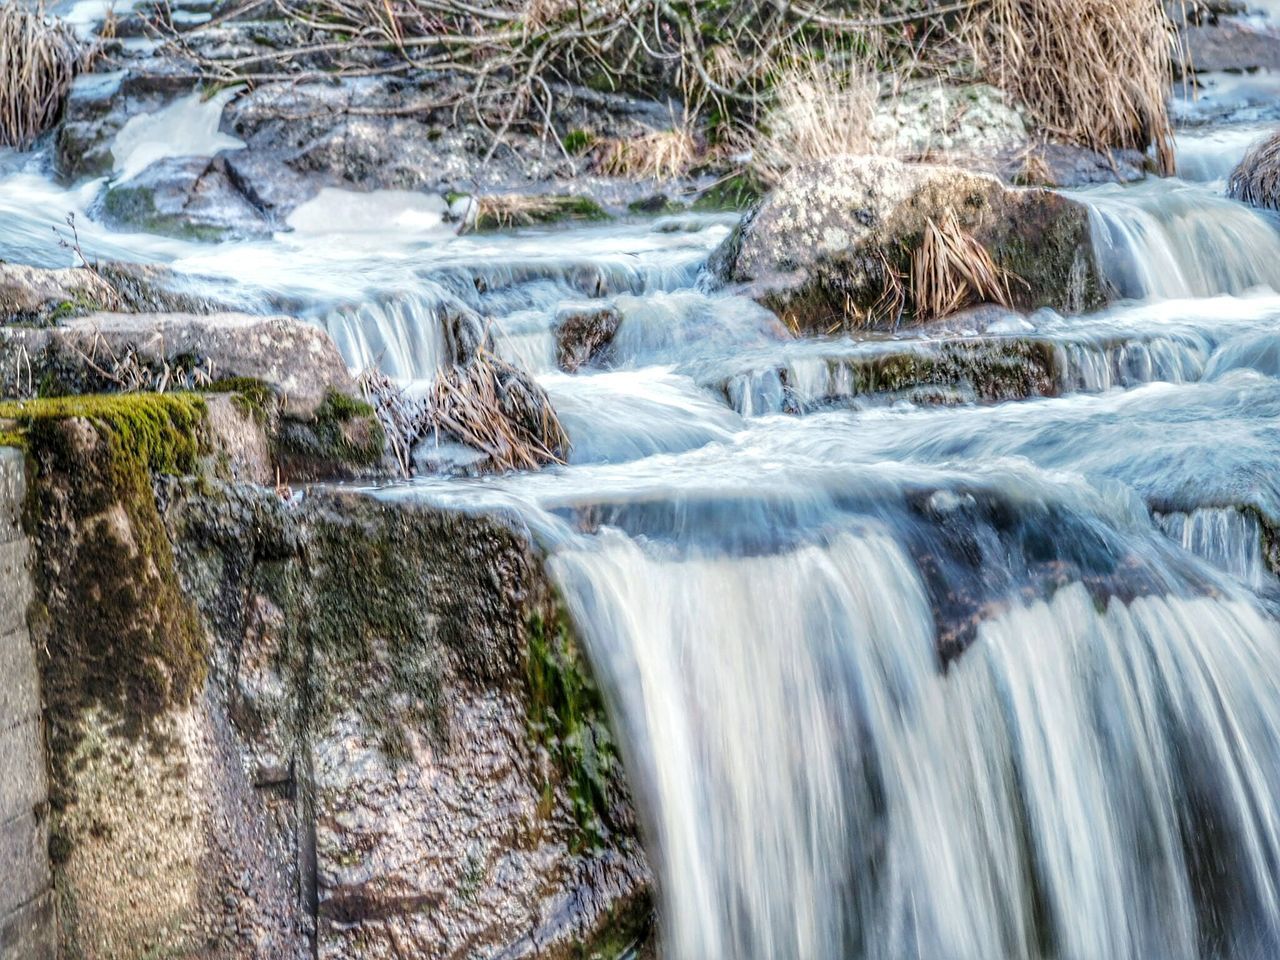 Water Waterfall Flowing Water Motion Long Exposure Nature Flowing Beauty In Nature No People Scenics Outdoors Splashing Day Close-up Beauty In Nature Winter Nature Outside